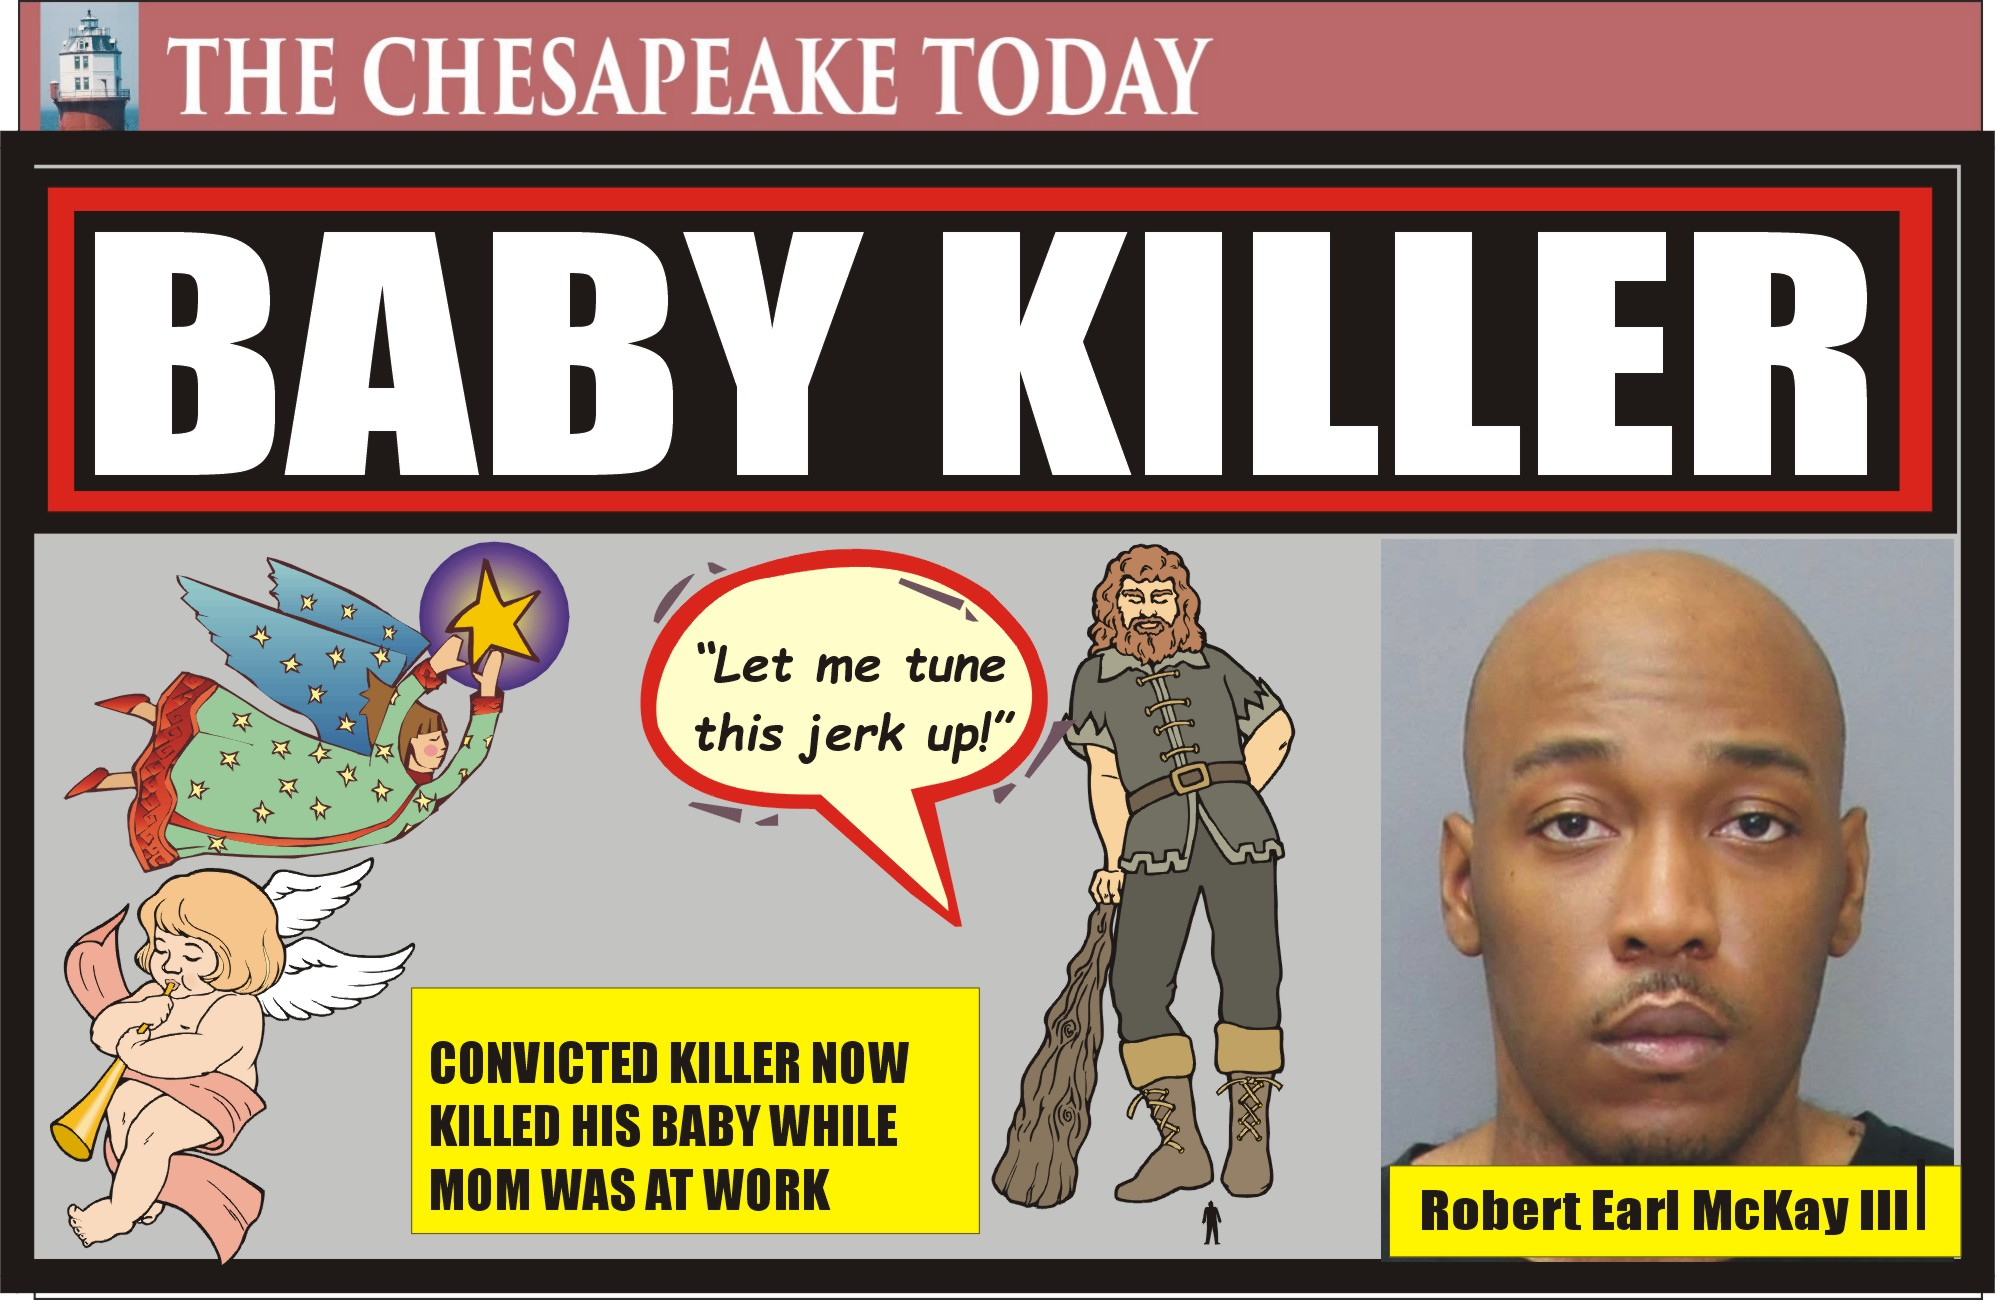 MURDER USA: Convicted Killer Robert Earl McKay III  Murdered His Infant, Daughter, While Mom Worked